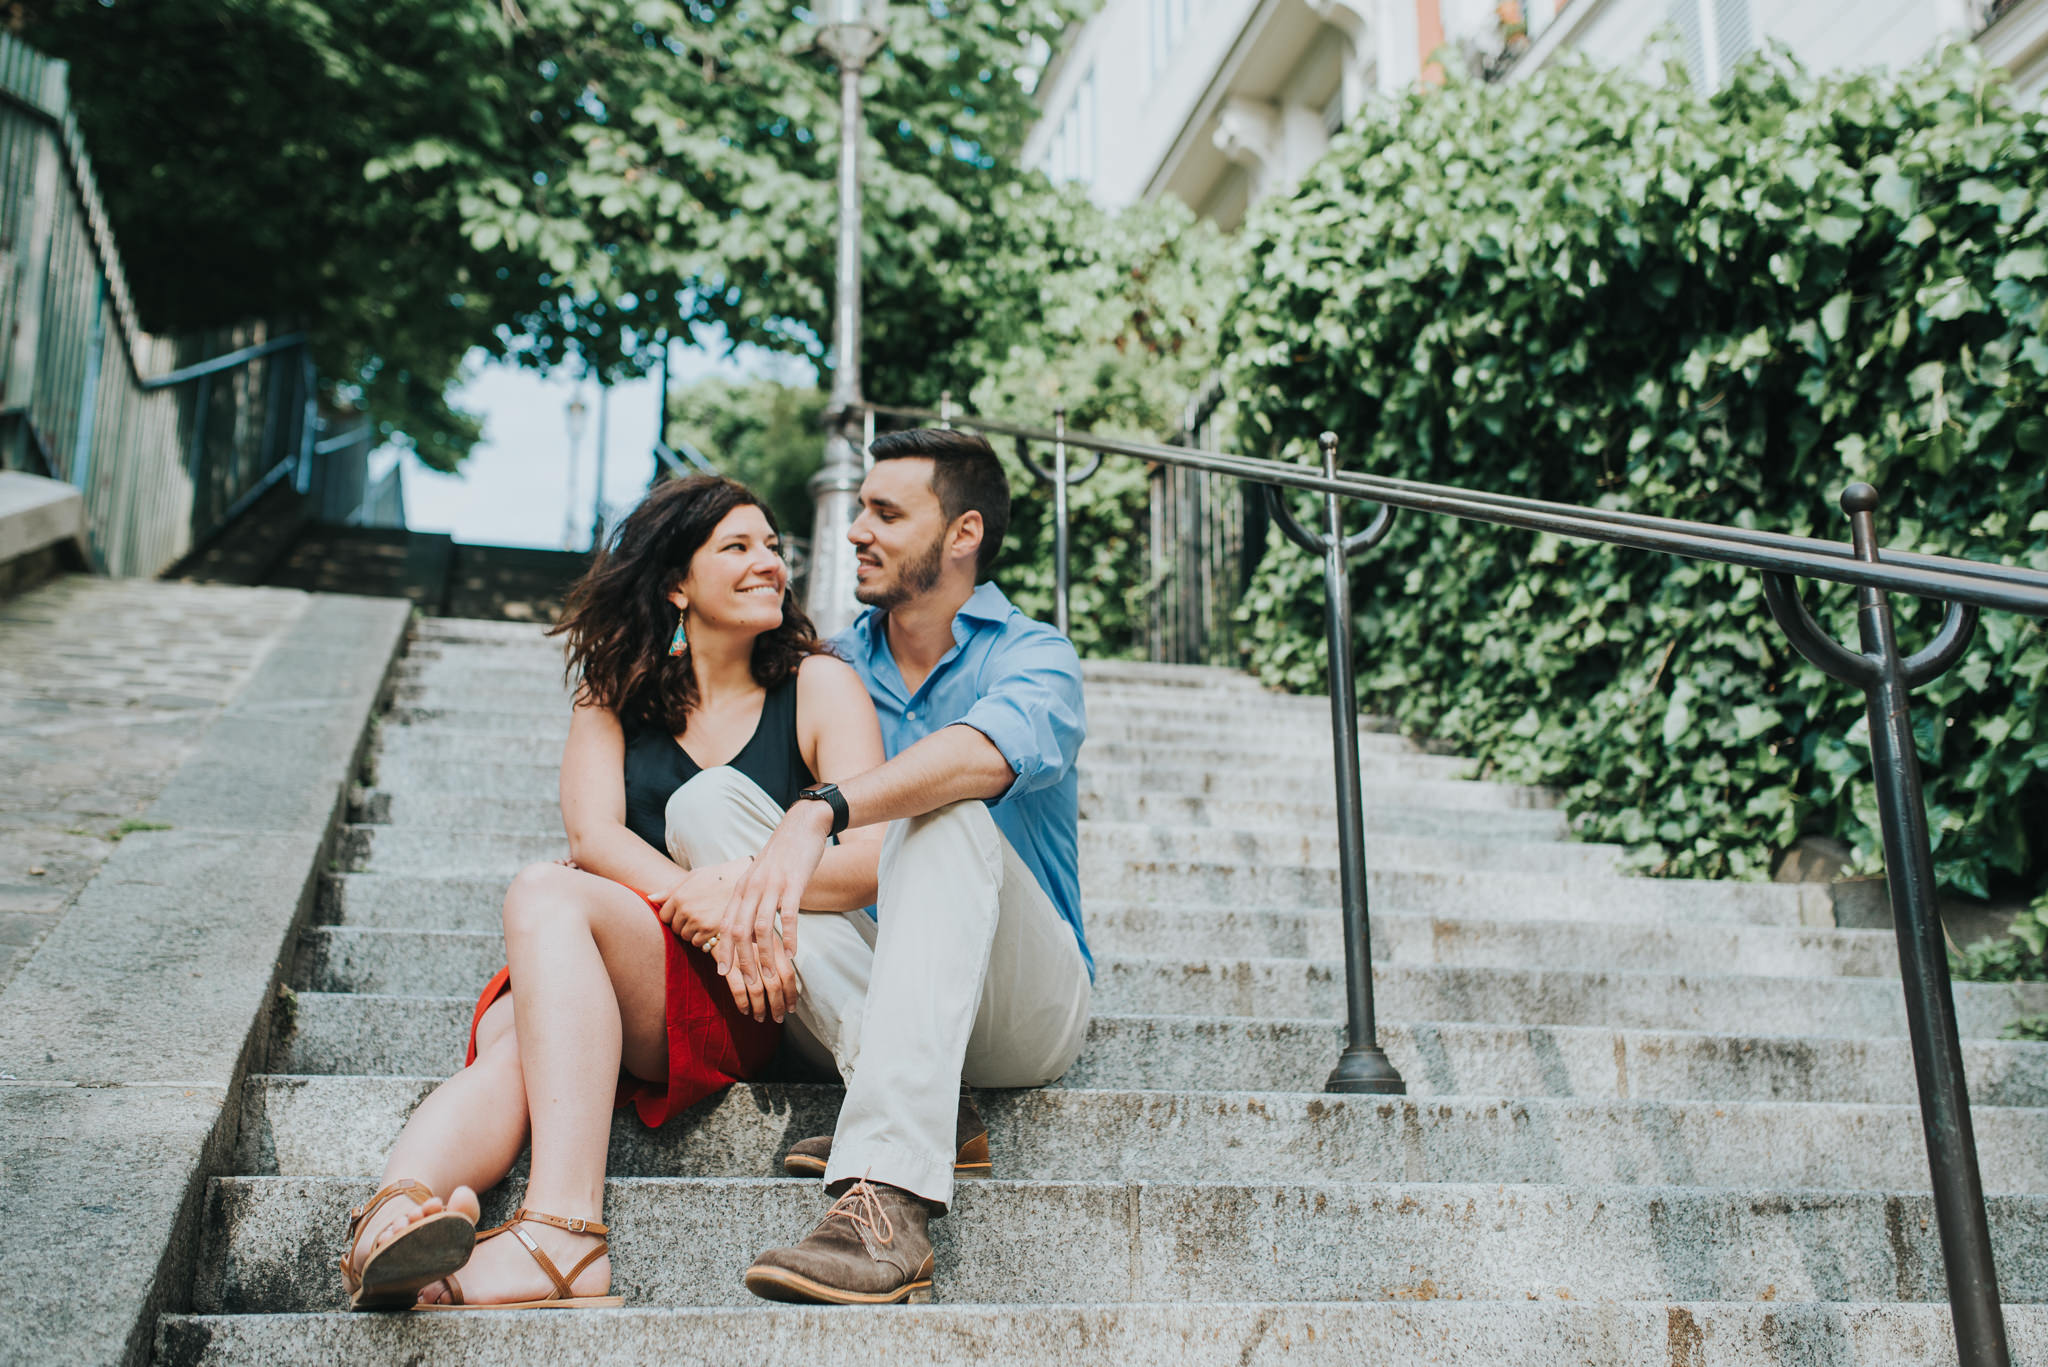 man and woman in love sitting on steps in Montmartre, Paris